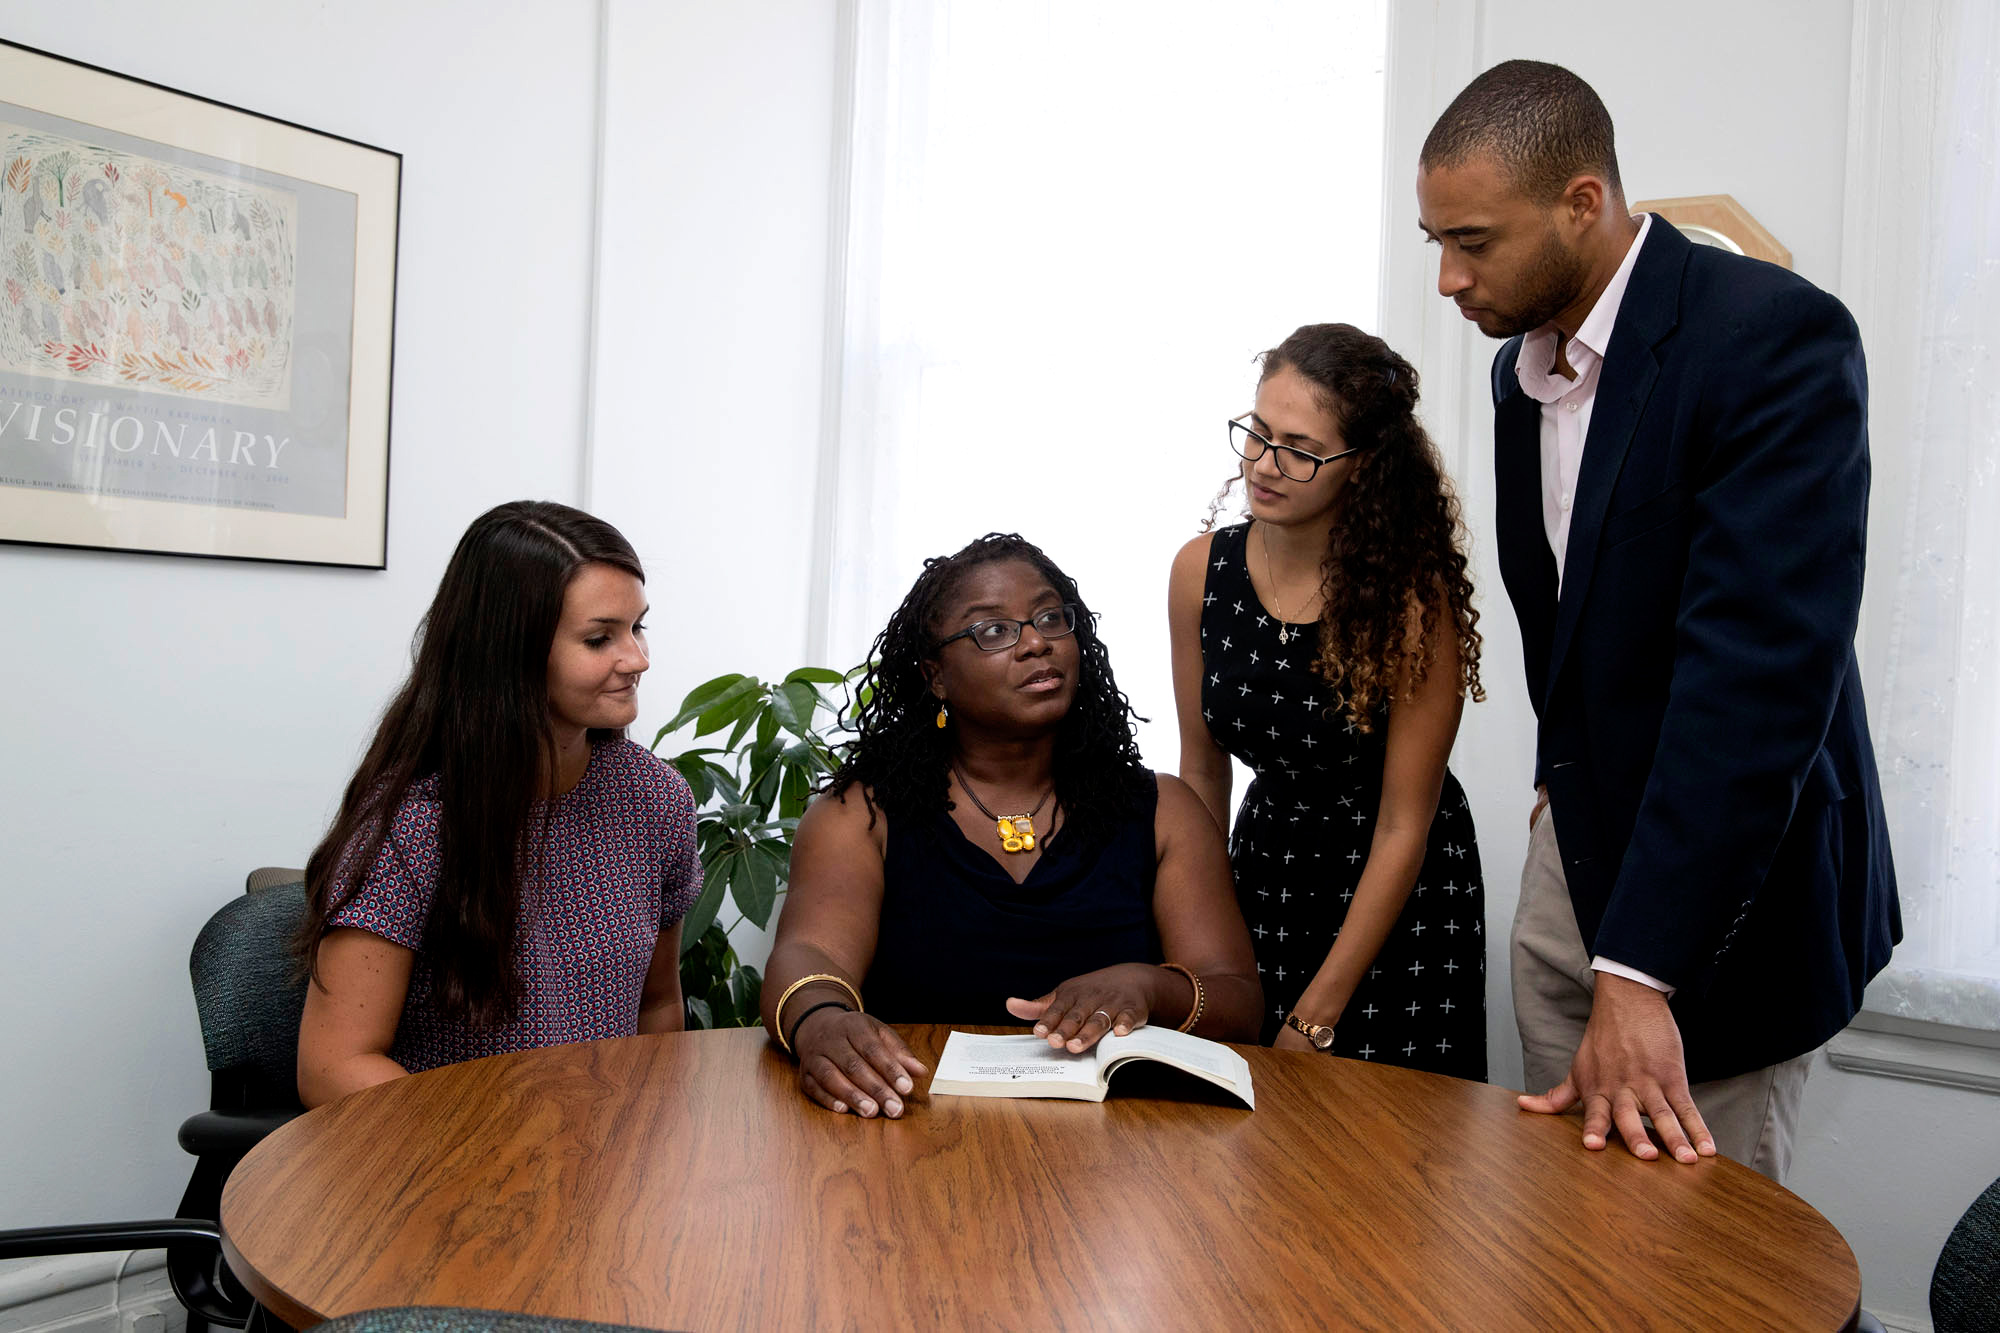 Jaronda Miller-Bryant (center, seated) works with interns, including Courtney Morgan, left, Kimia Nikseresht, and Luke Williams, Martin Luther King research assistant (both standing).